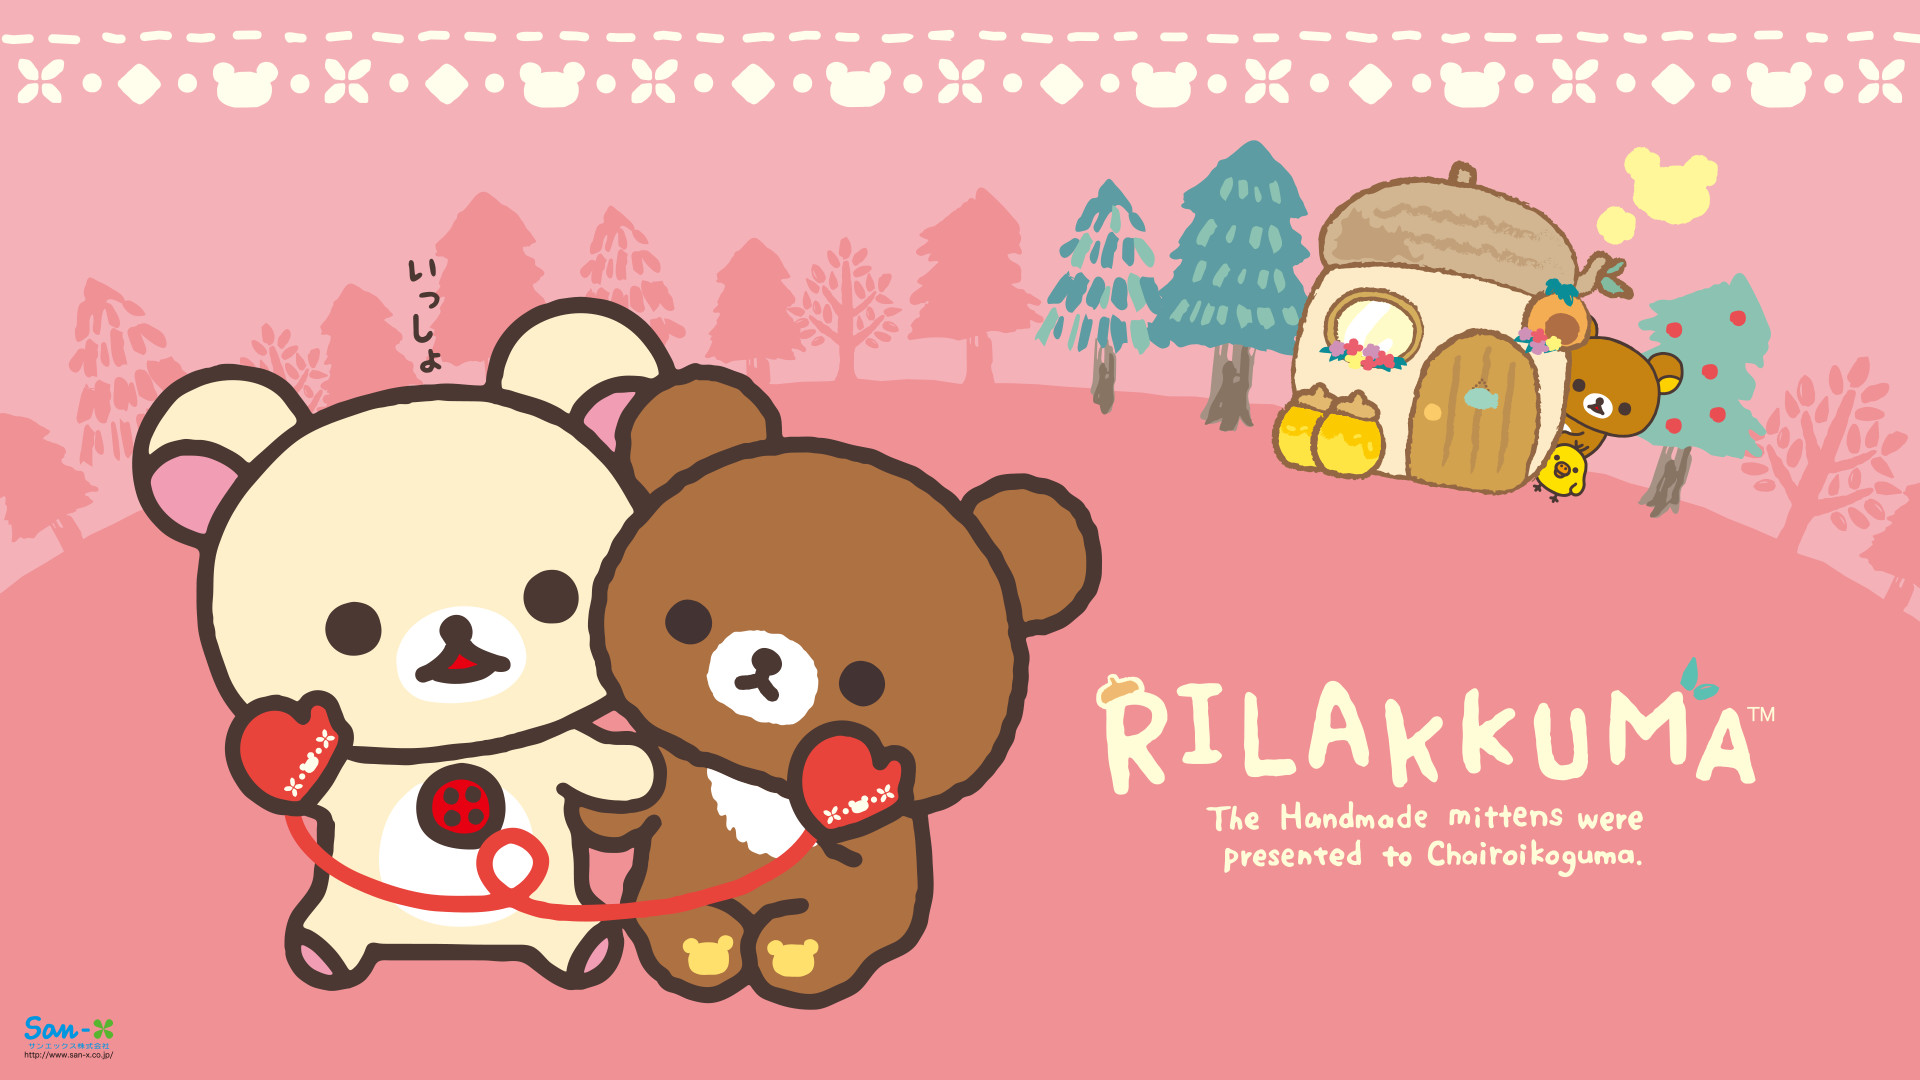 1920x1080 pc_1080_1920.png (1920×1080) | kawaii character | Pinterest | Rilakkuma, Rilakkuma  wallpaper and Wallpaper